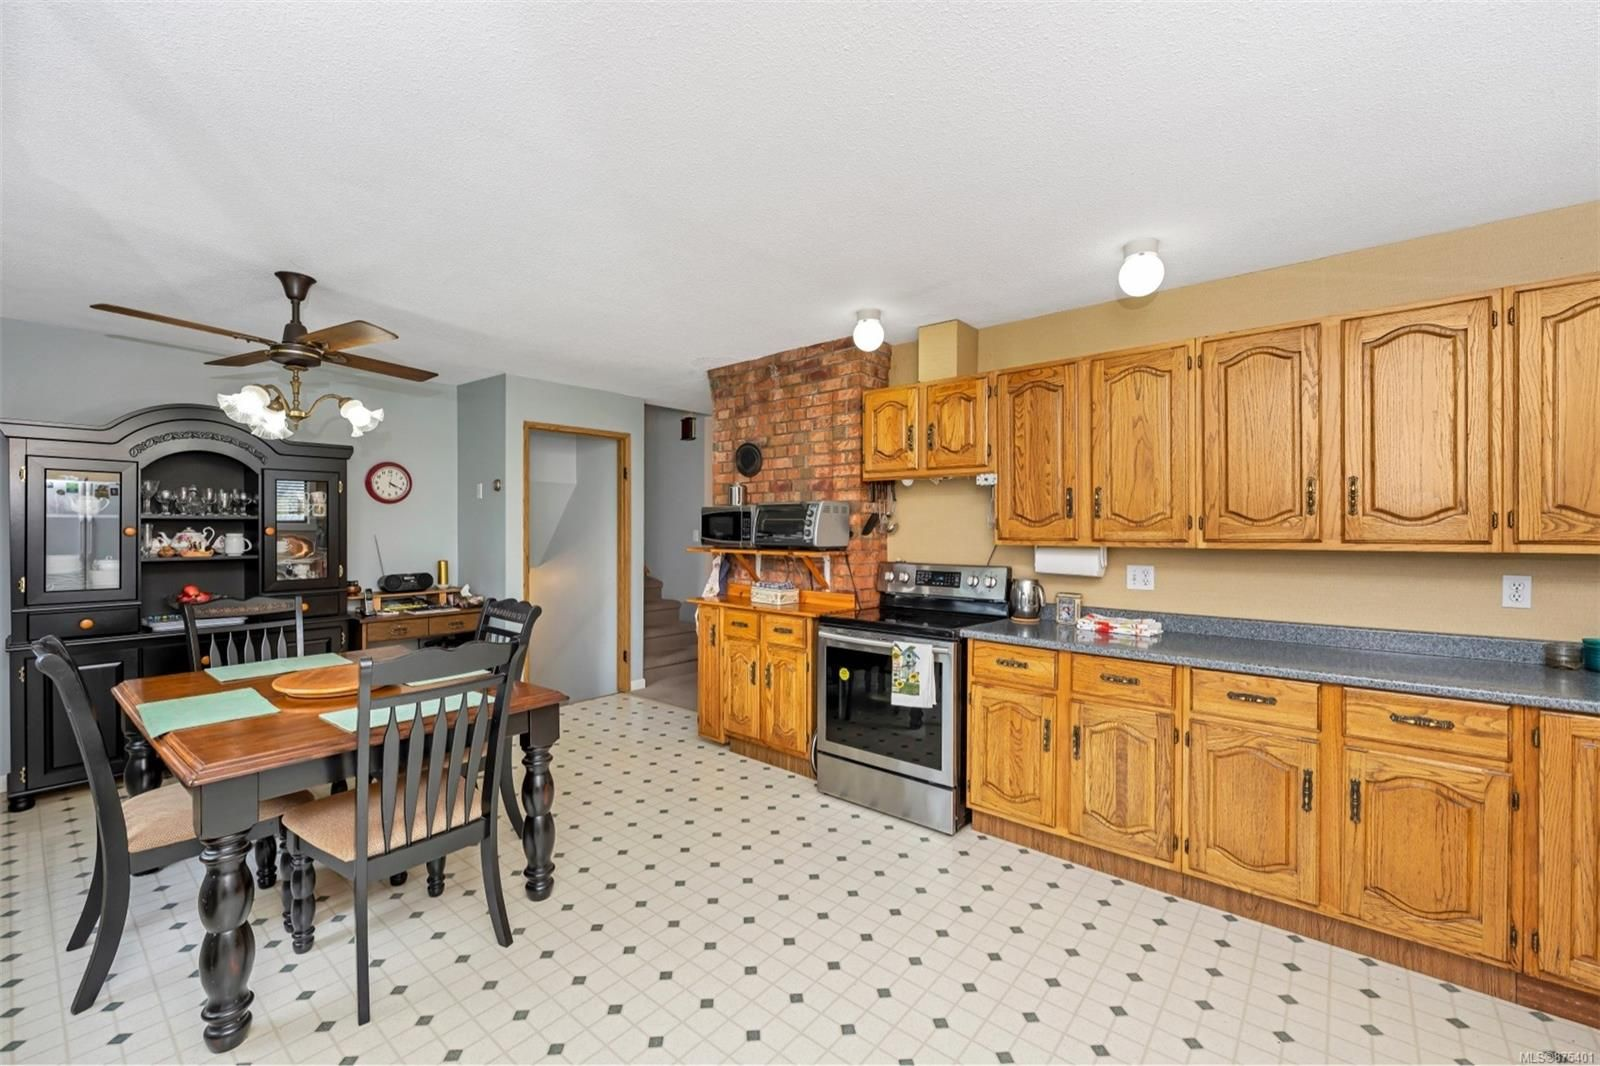 Photo 28: Photos: 6886 Lakes Rd in : Du East Duncan House for sale (Duncan)  : MLS®# 875401